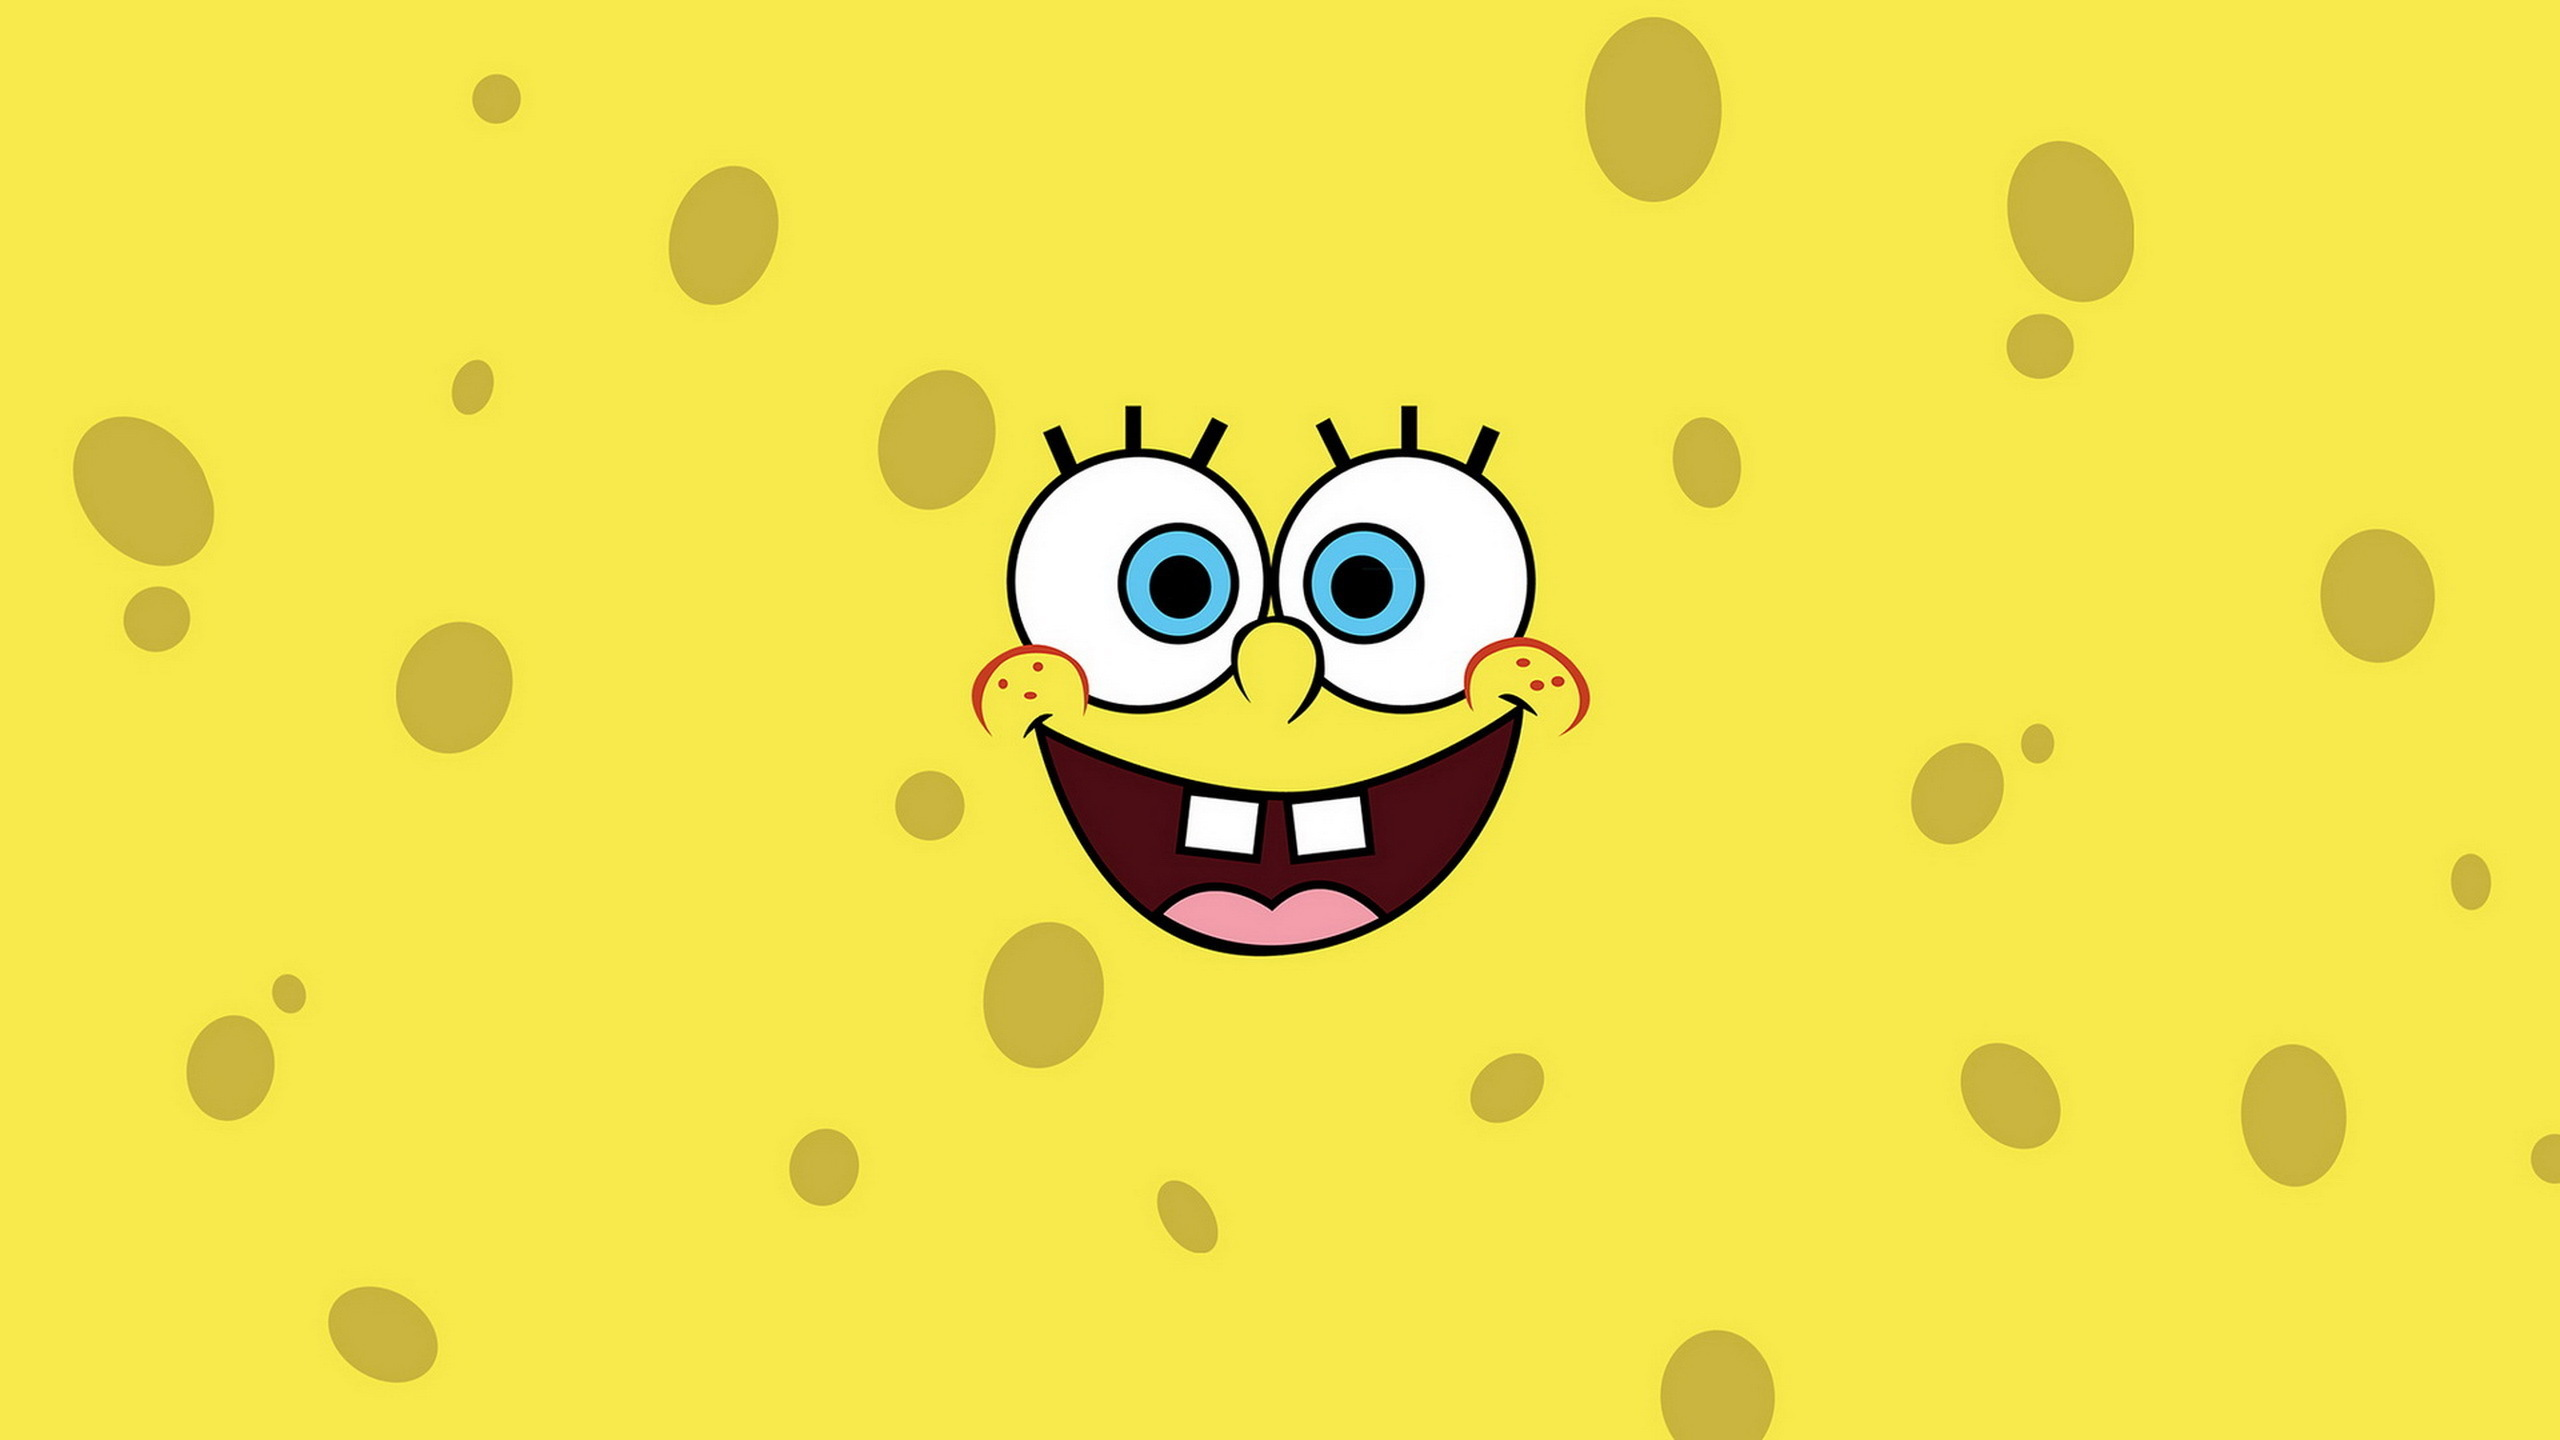 Wallpaper Mickey Mouse 3d Spongebob Squarepants Wallpapers Pictures Images